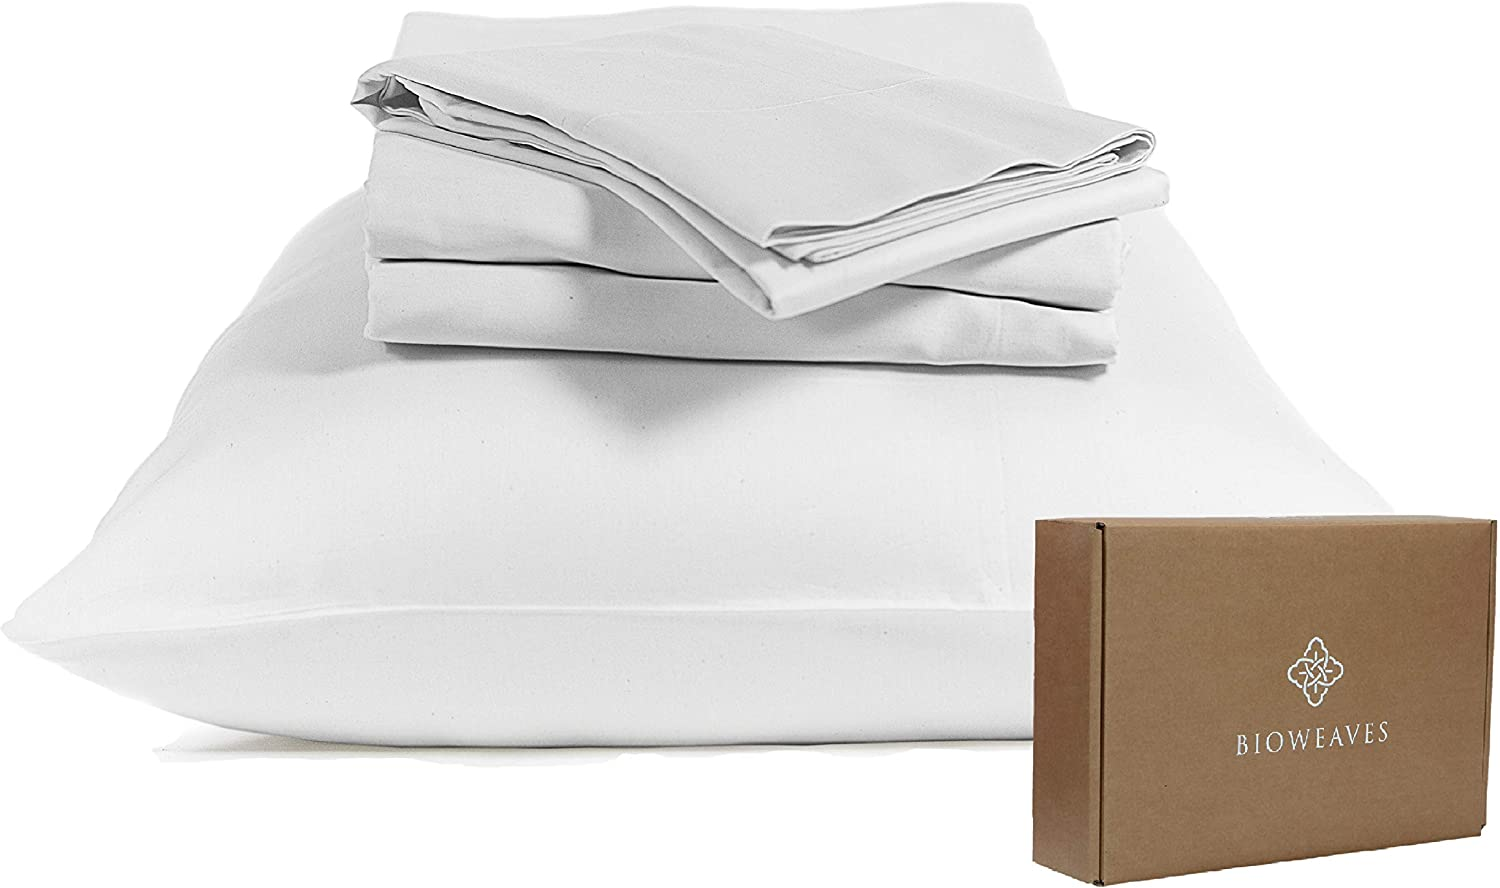 Twin XL, Sand 300 Thread Count Soft Sateen Weave GOTS Certified with deep Pockets BIOWEAVES 100/% Organic Cotton 1 Fitted Sheet Only